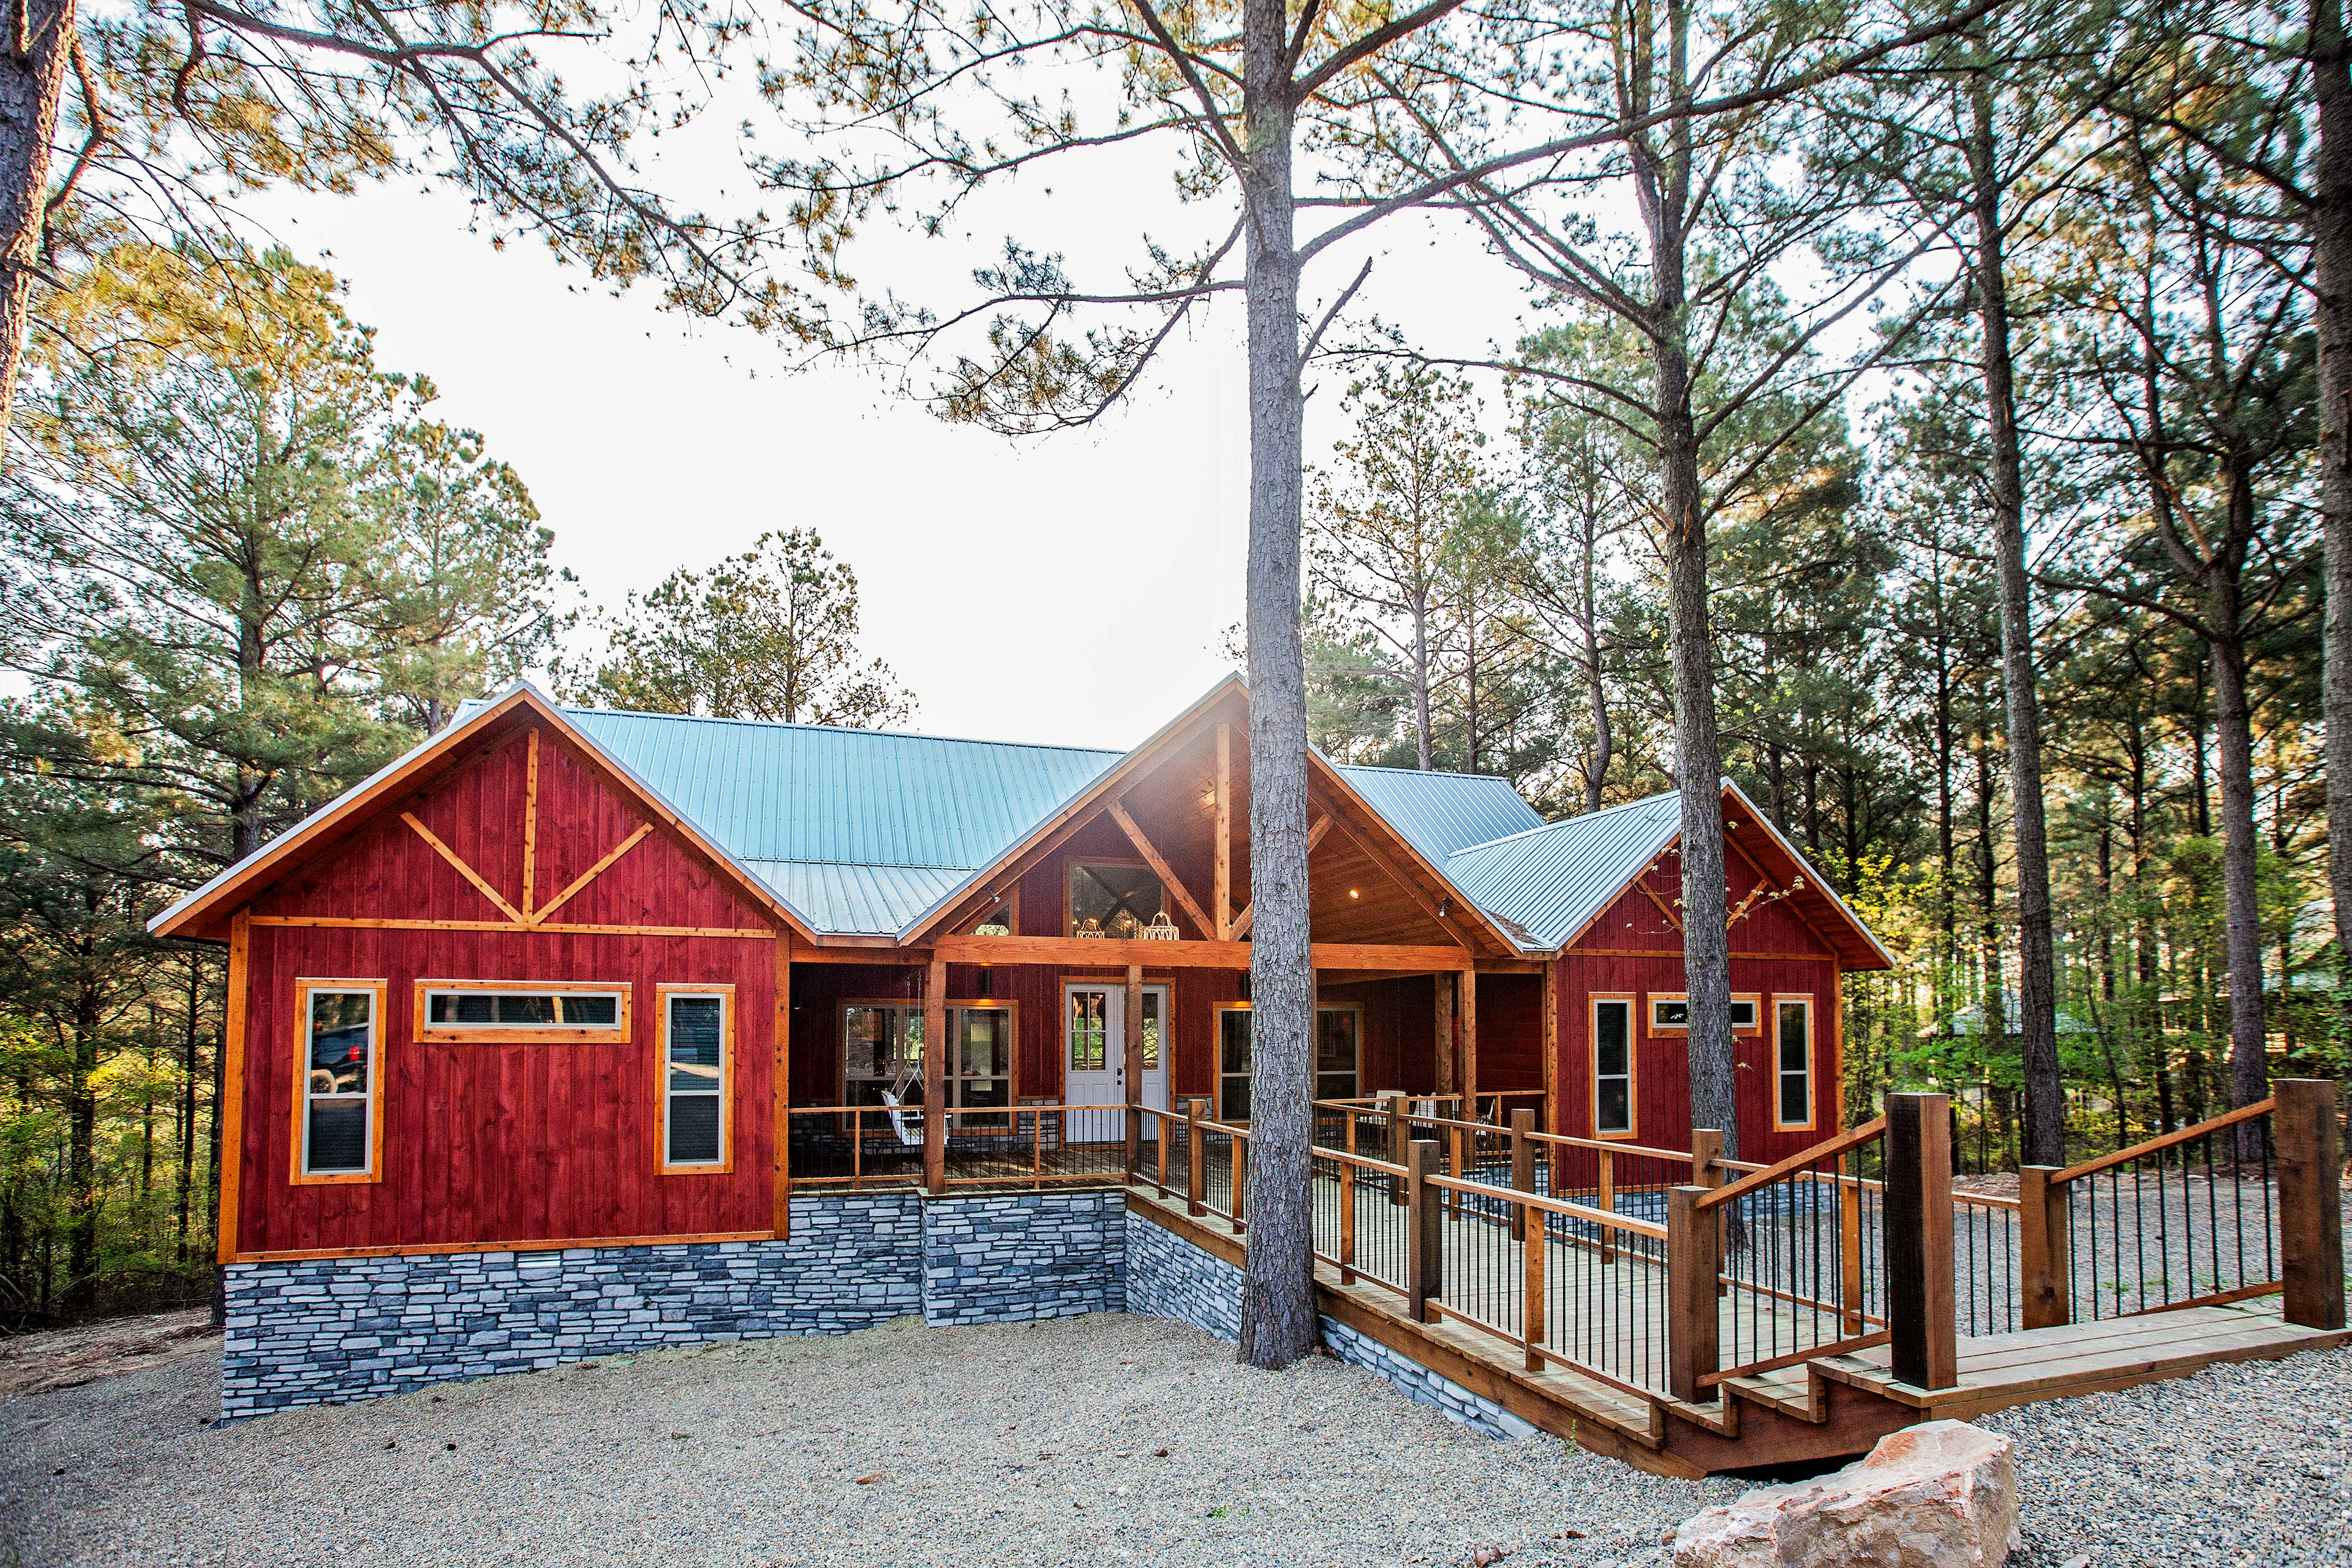 The cabin features elements of contemporary, chic, & rustic styles.